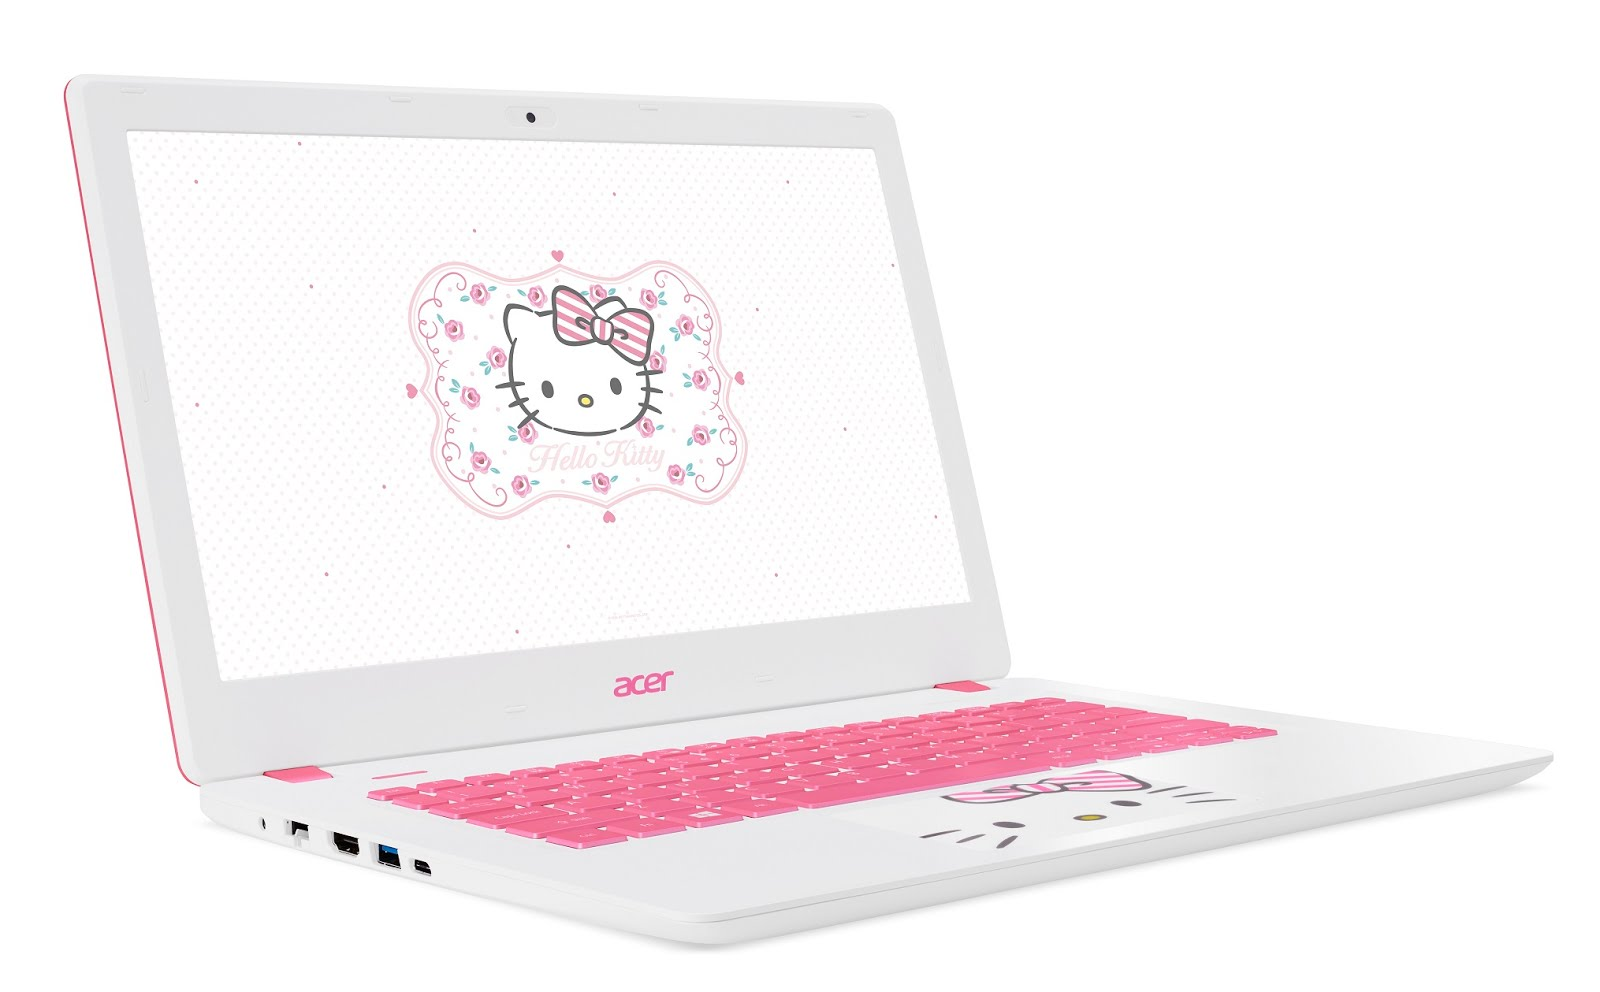 Acer goes Pink with the Limited Edition Sanrio Hello Kitty Laptop